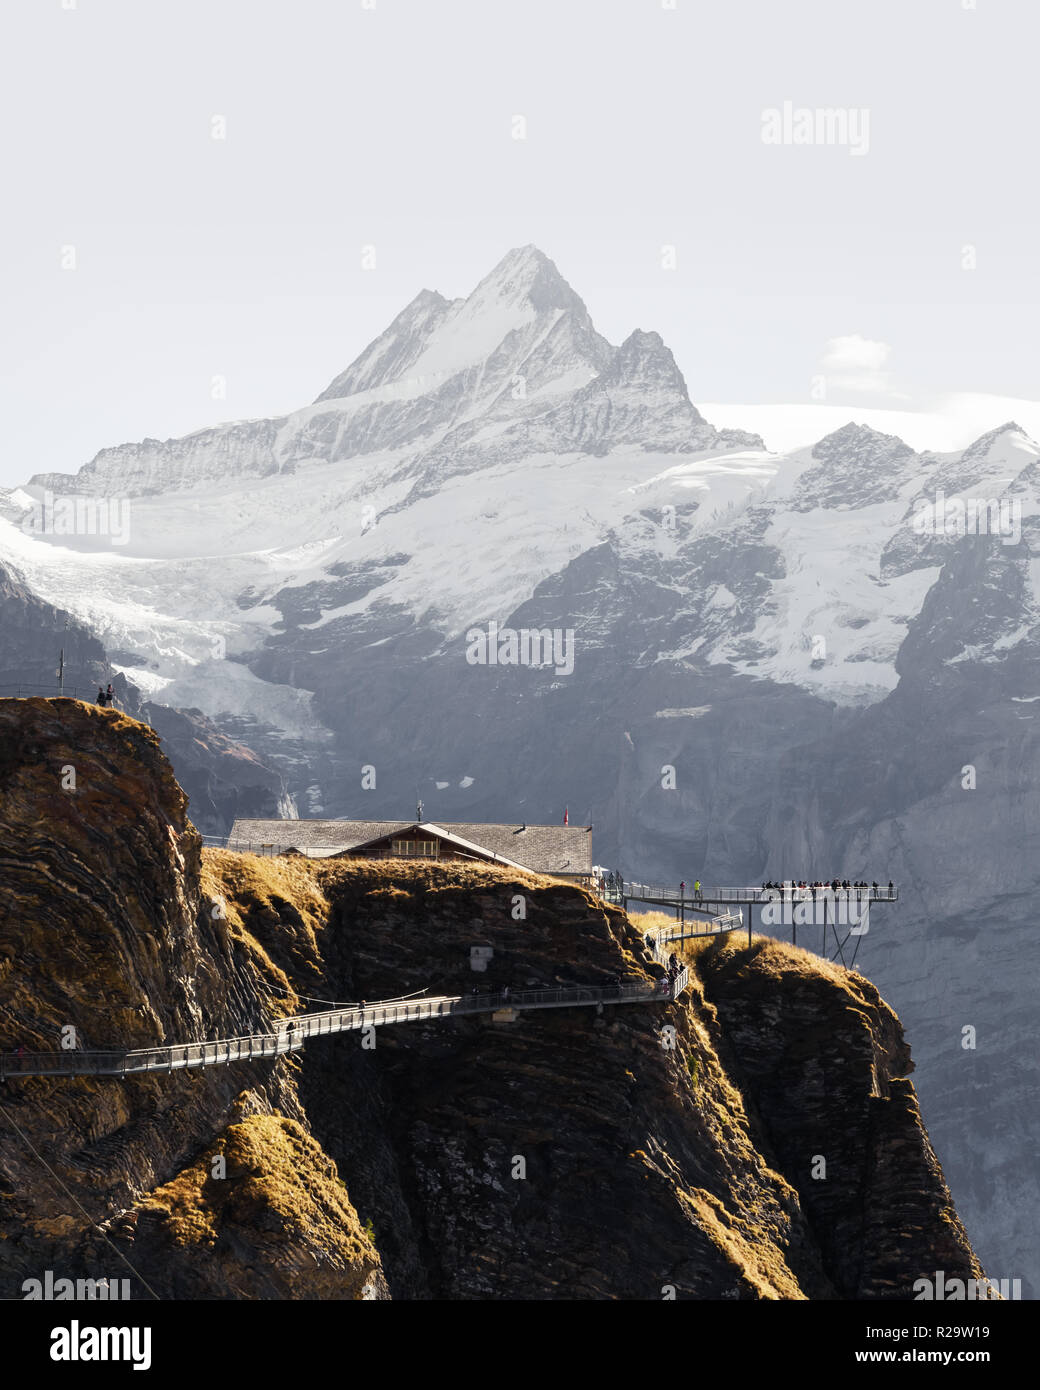 Extreme view point on the top of Grindelwald First cableway in Swiss Alps. Snowy Schreckhorn mountain peak on the background. Bernese Alps - Stock Image